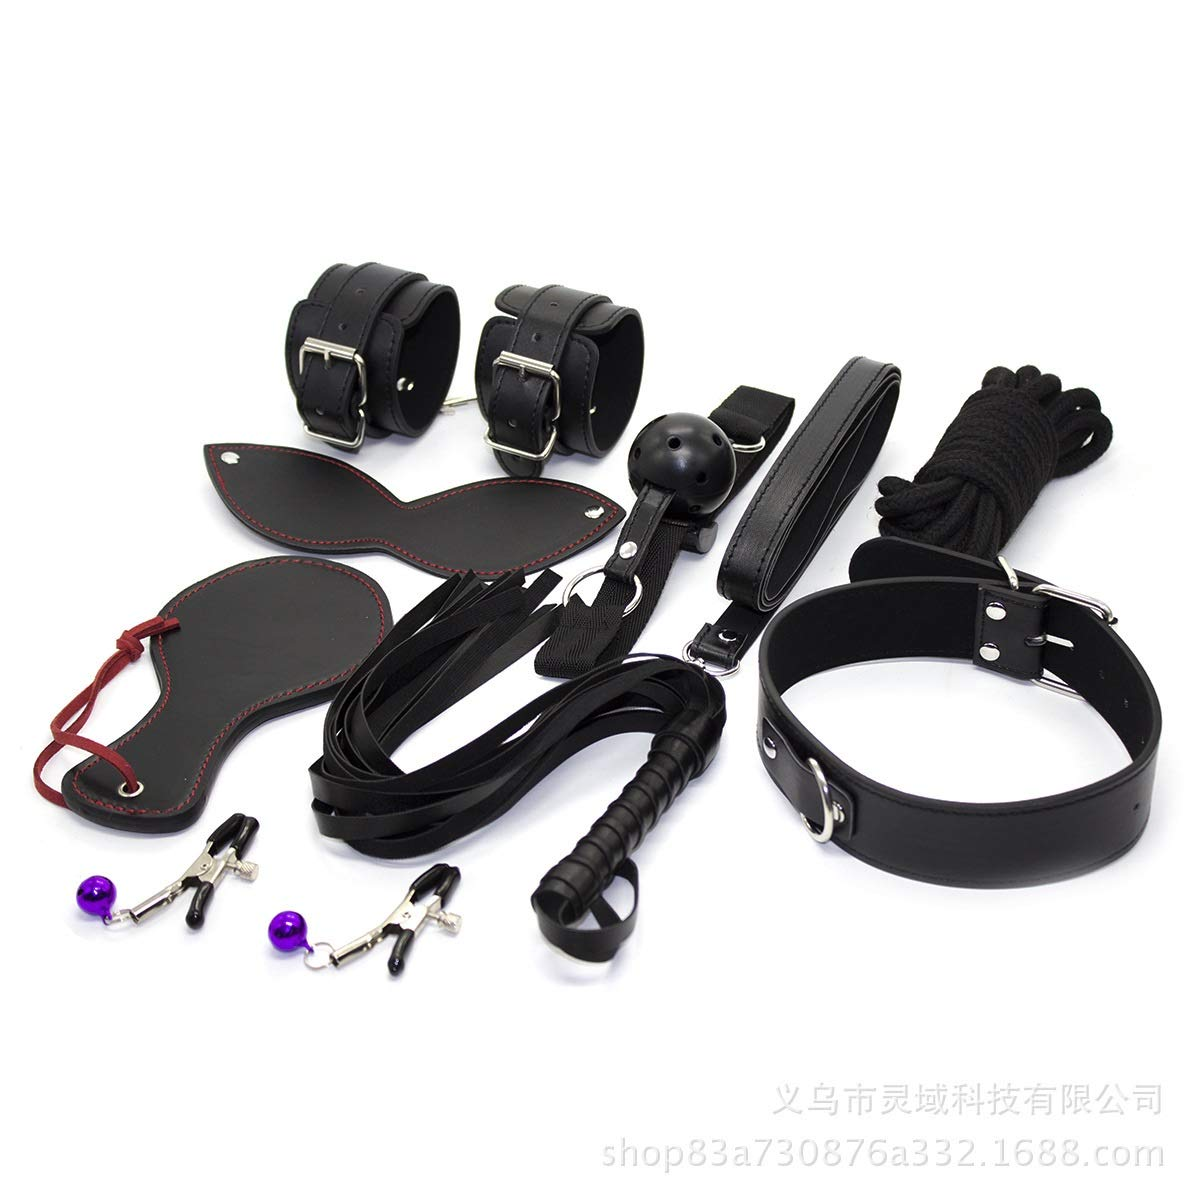 MDYHJDHYQ Erotic Leather Whip Nipple Rope Hand Beat Game Eight-Piece Suit Black Eye Mask Hand Buckle Foot Buckle Sex Toys (Color : Black) by MDYHJDHYQ